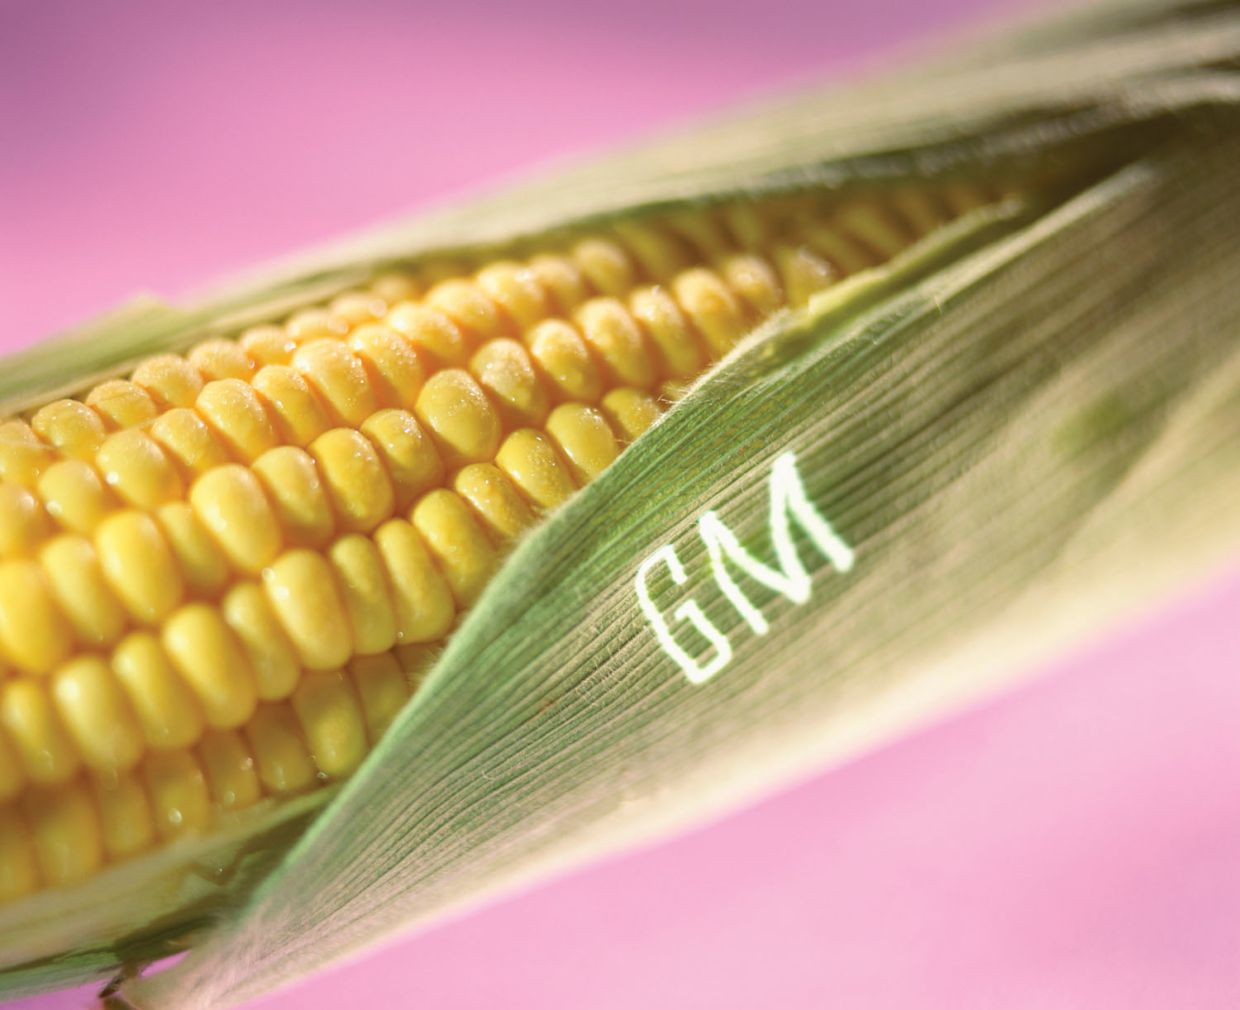 Read more about the article Are GMO foods good or bad for you? Here are some myths and facts